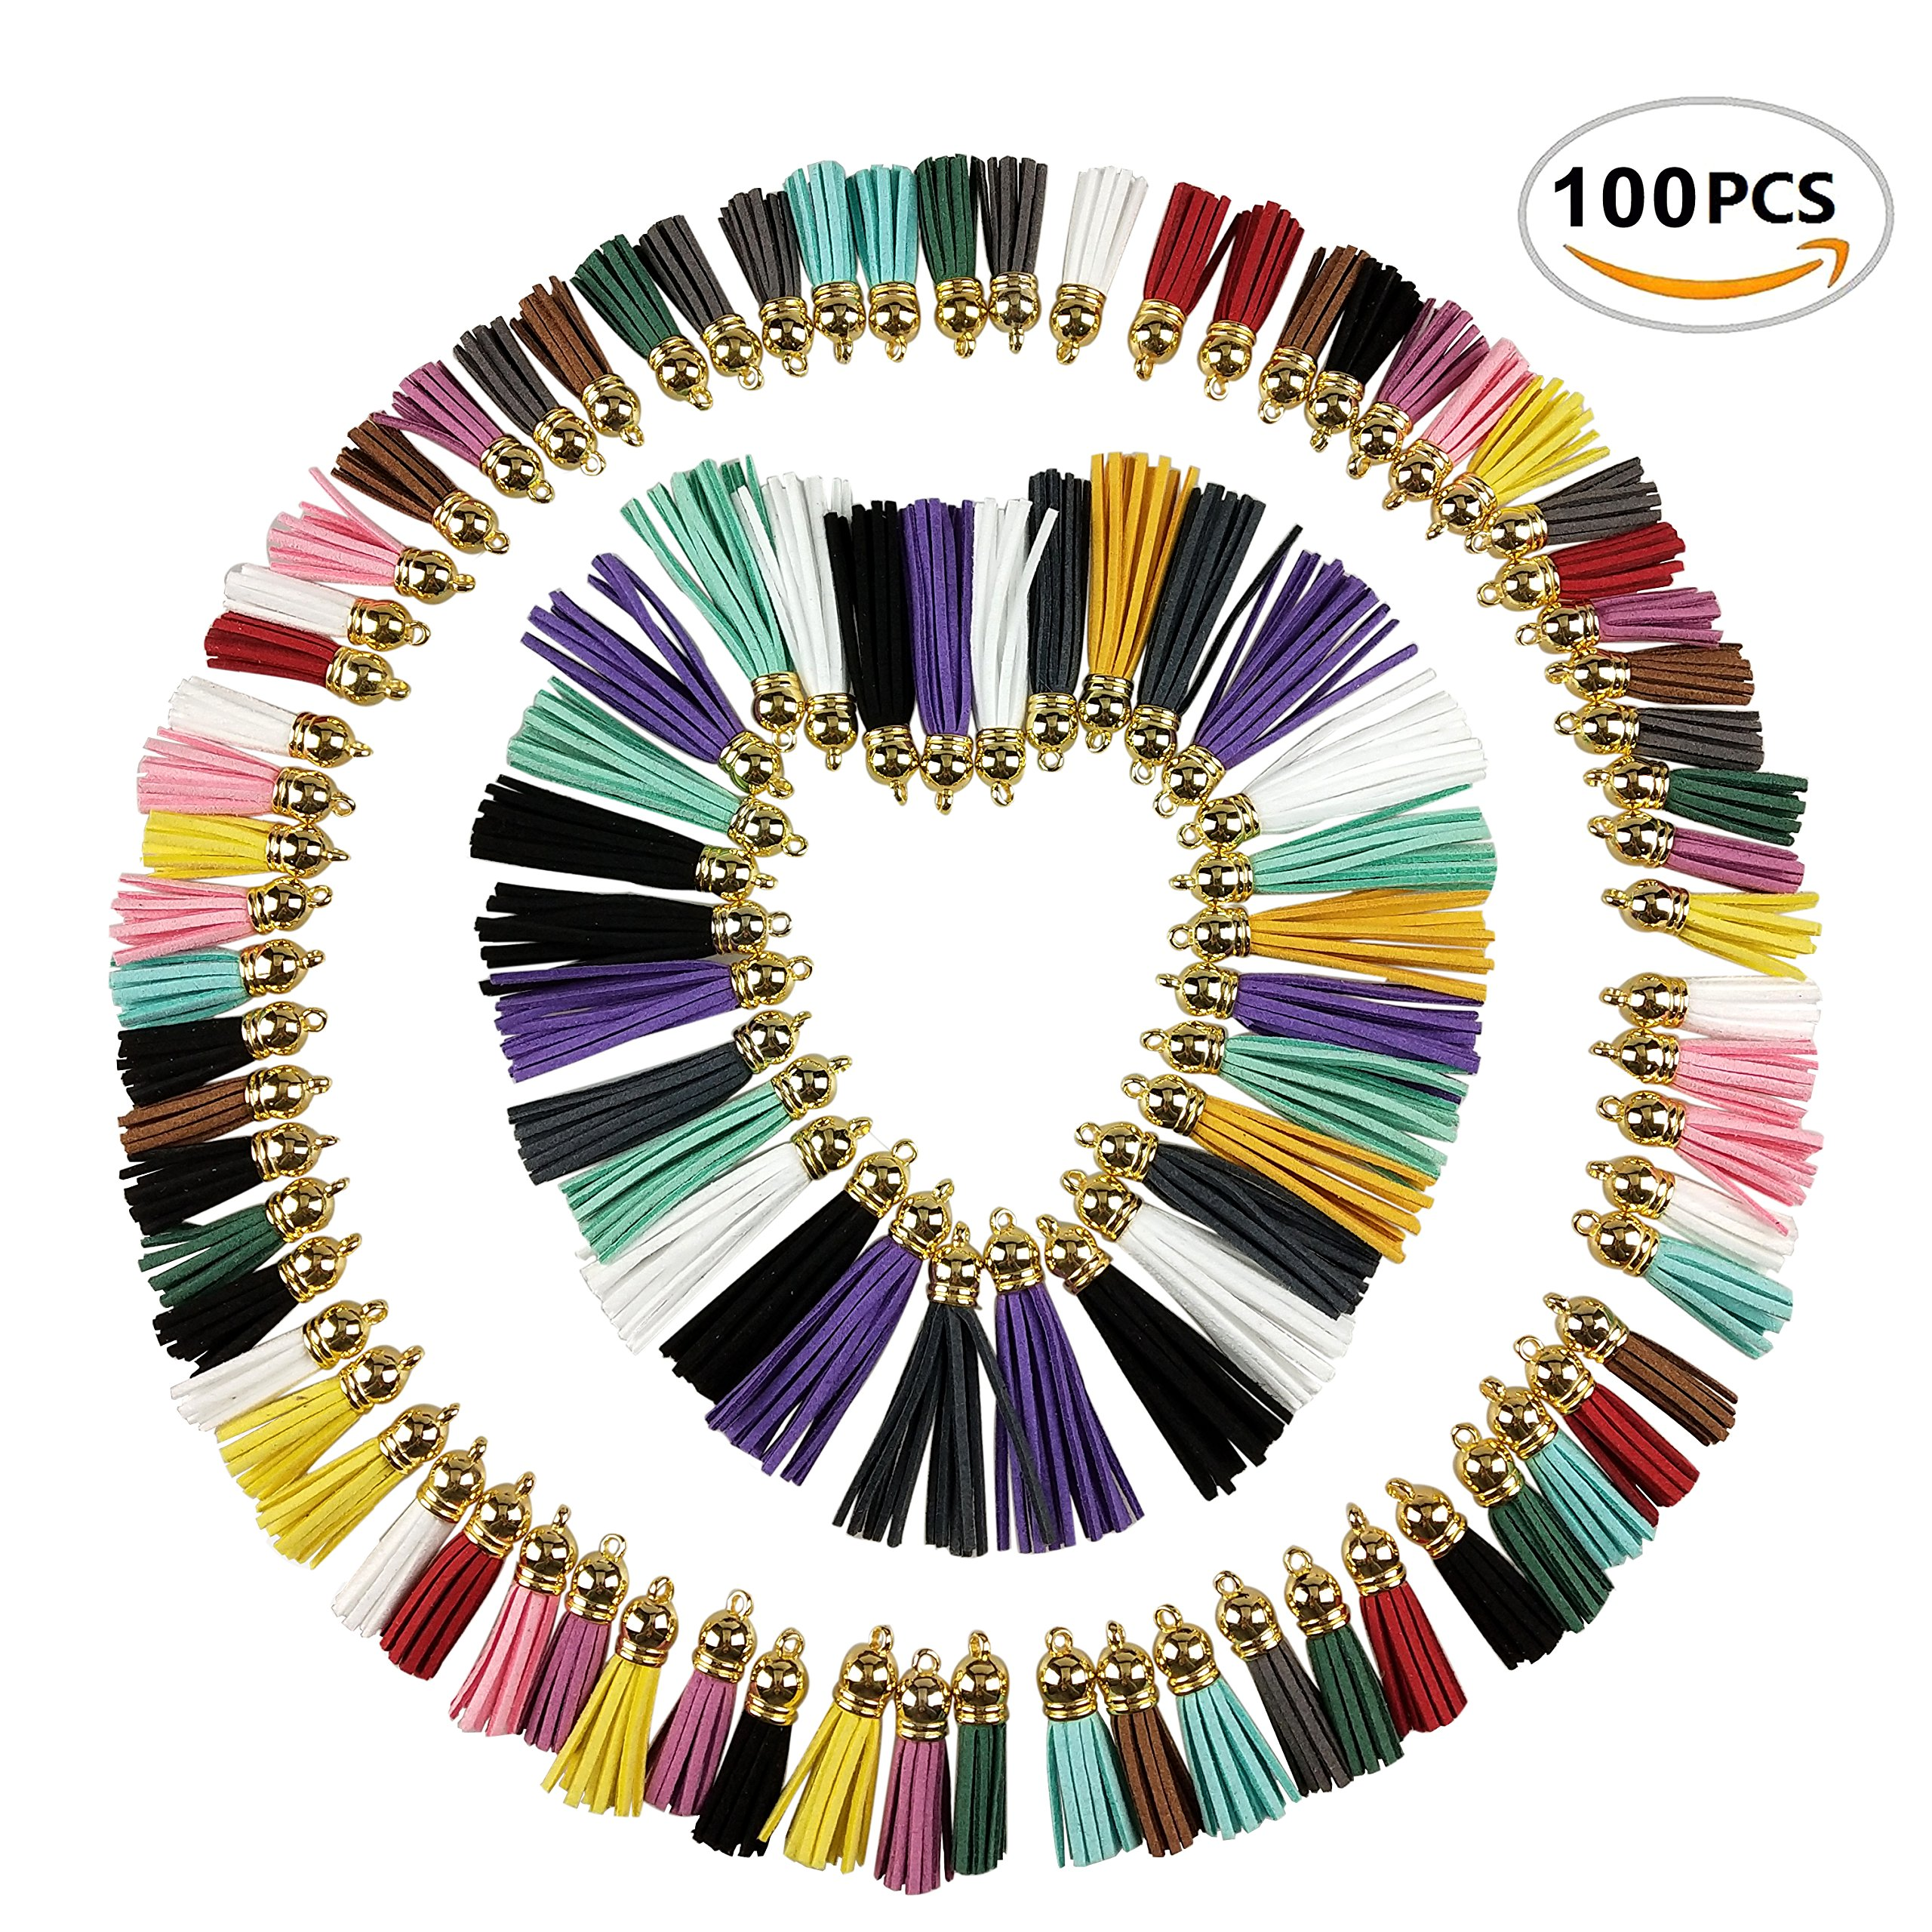 100PCS Multi-Colors Faux Suede Leather Tassel Craft Pendants with Gold Caps for Cellphone Straps, Jewelry Making, DIY Charms, Key Chain Accessory by CSPRING